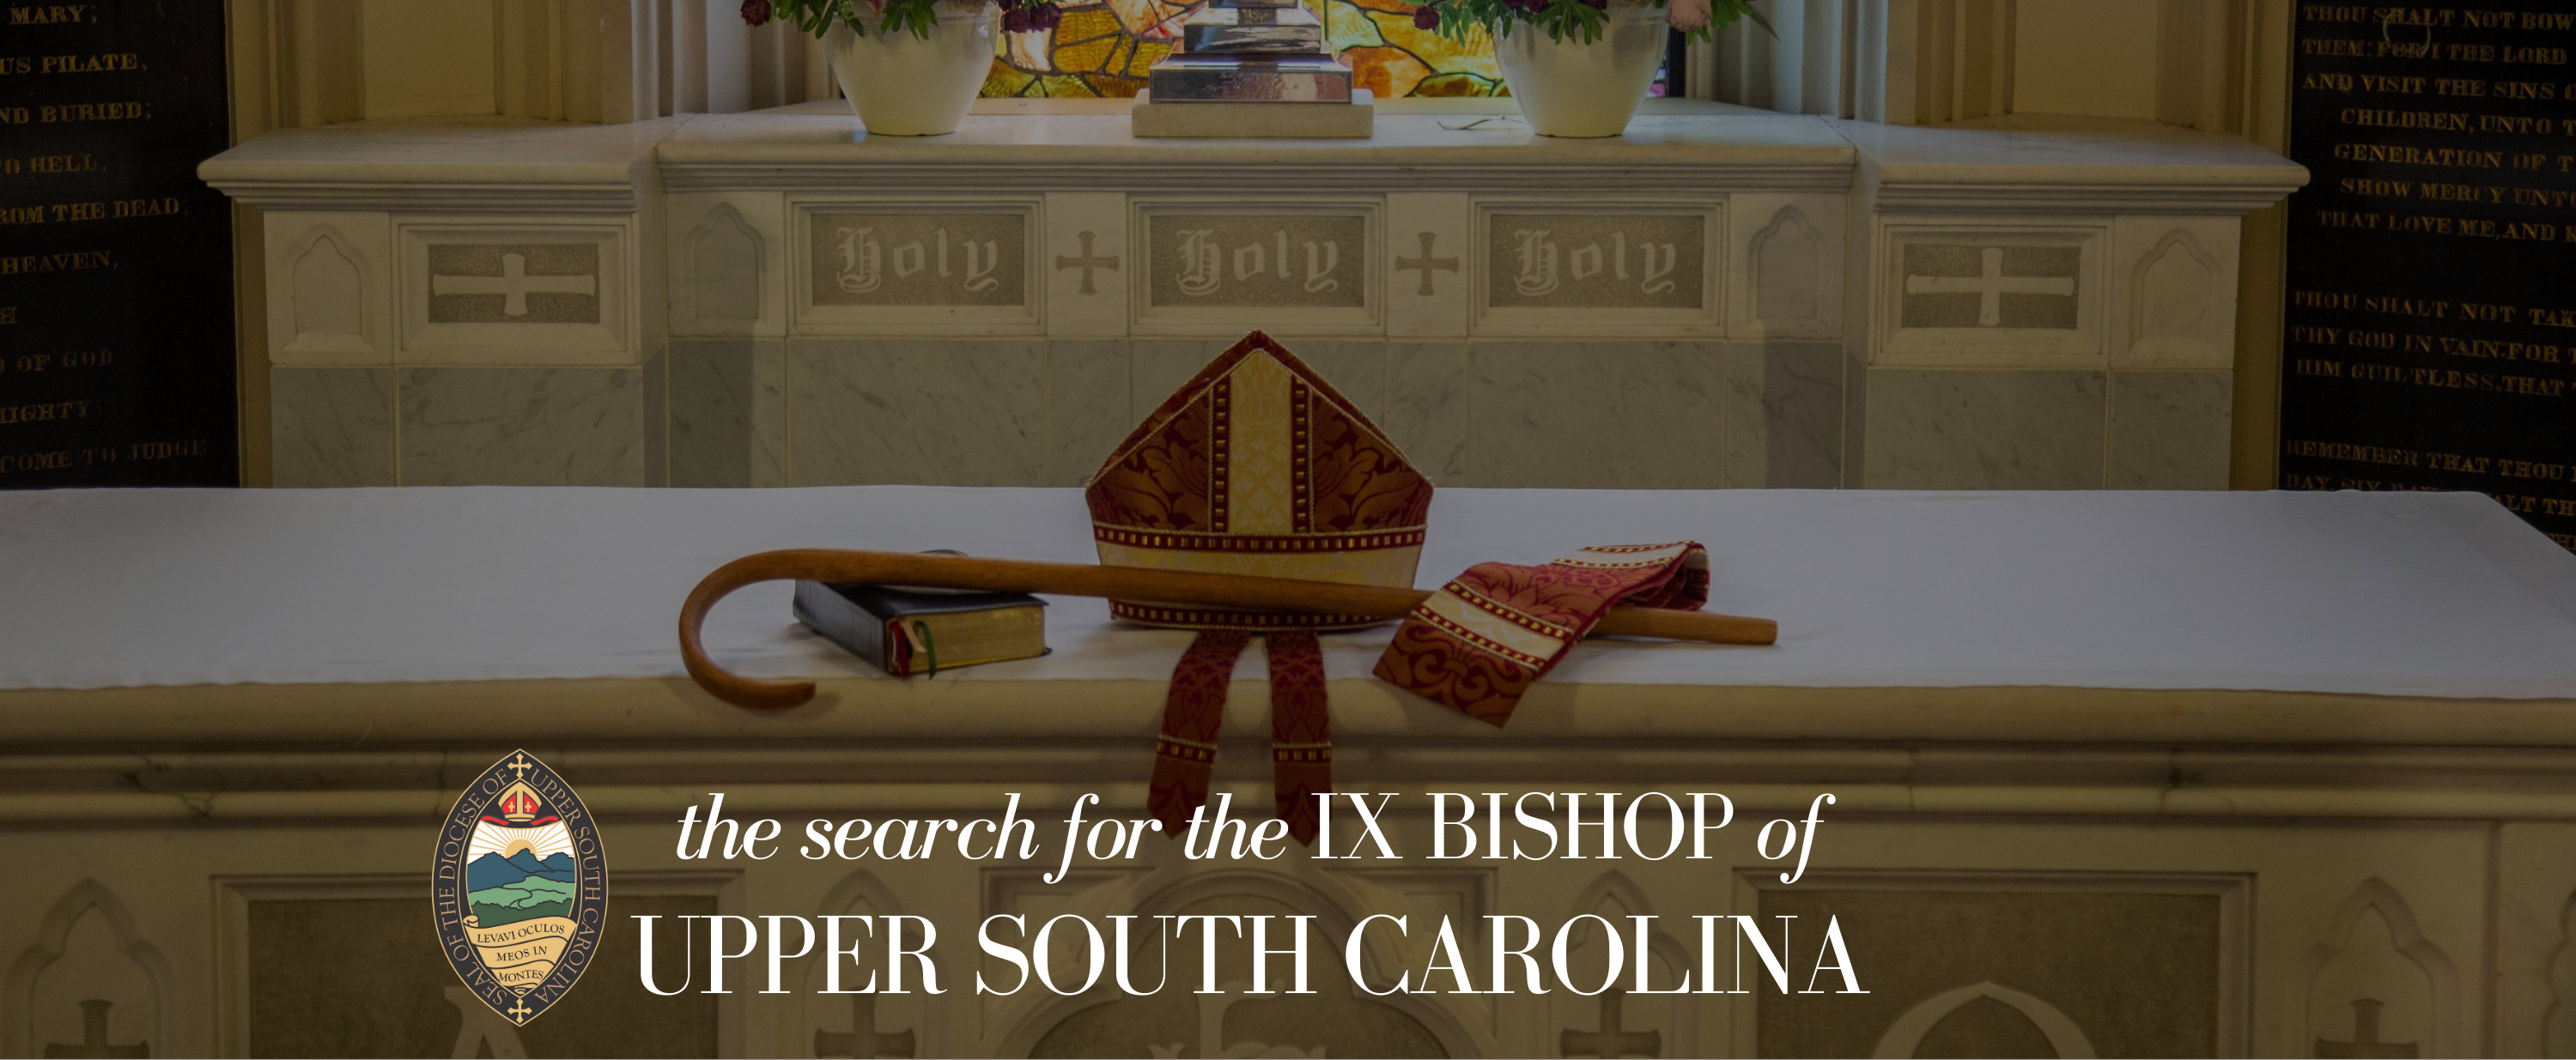 bishop-search-altar_836